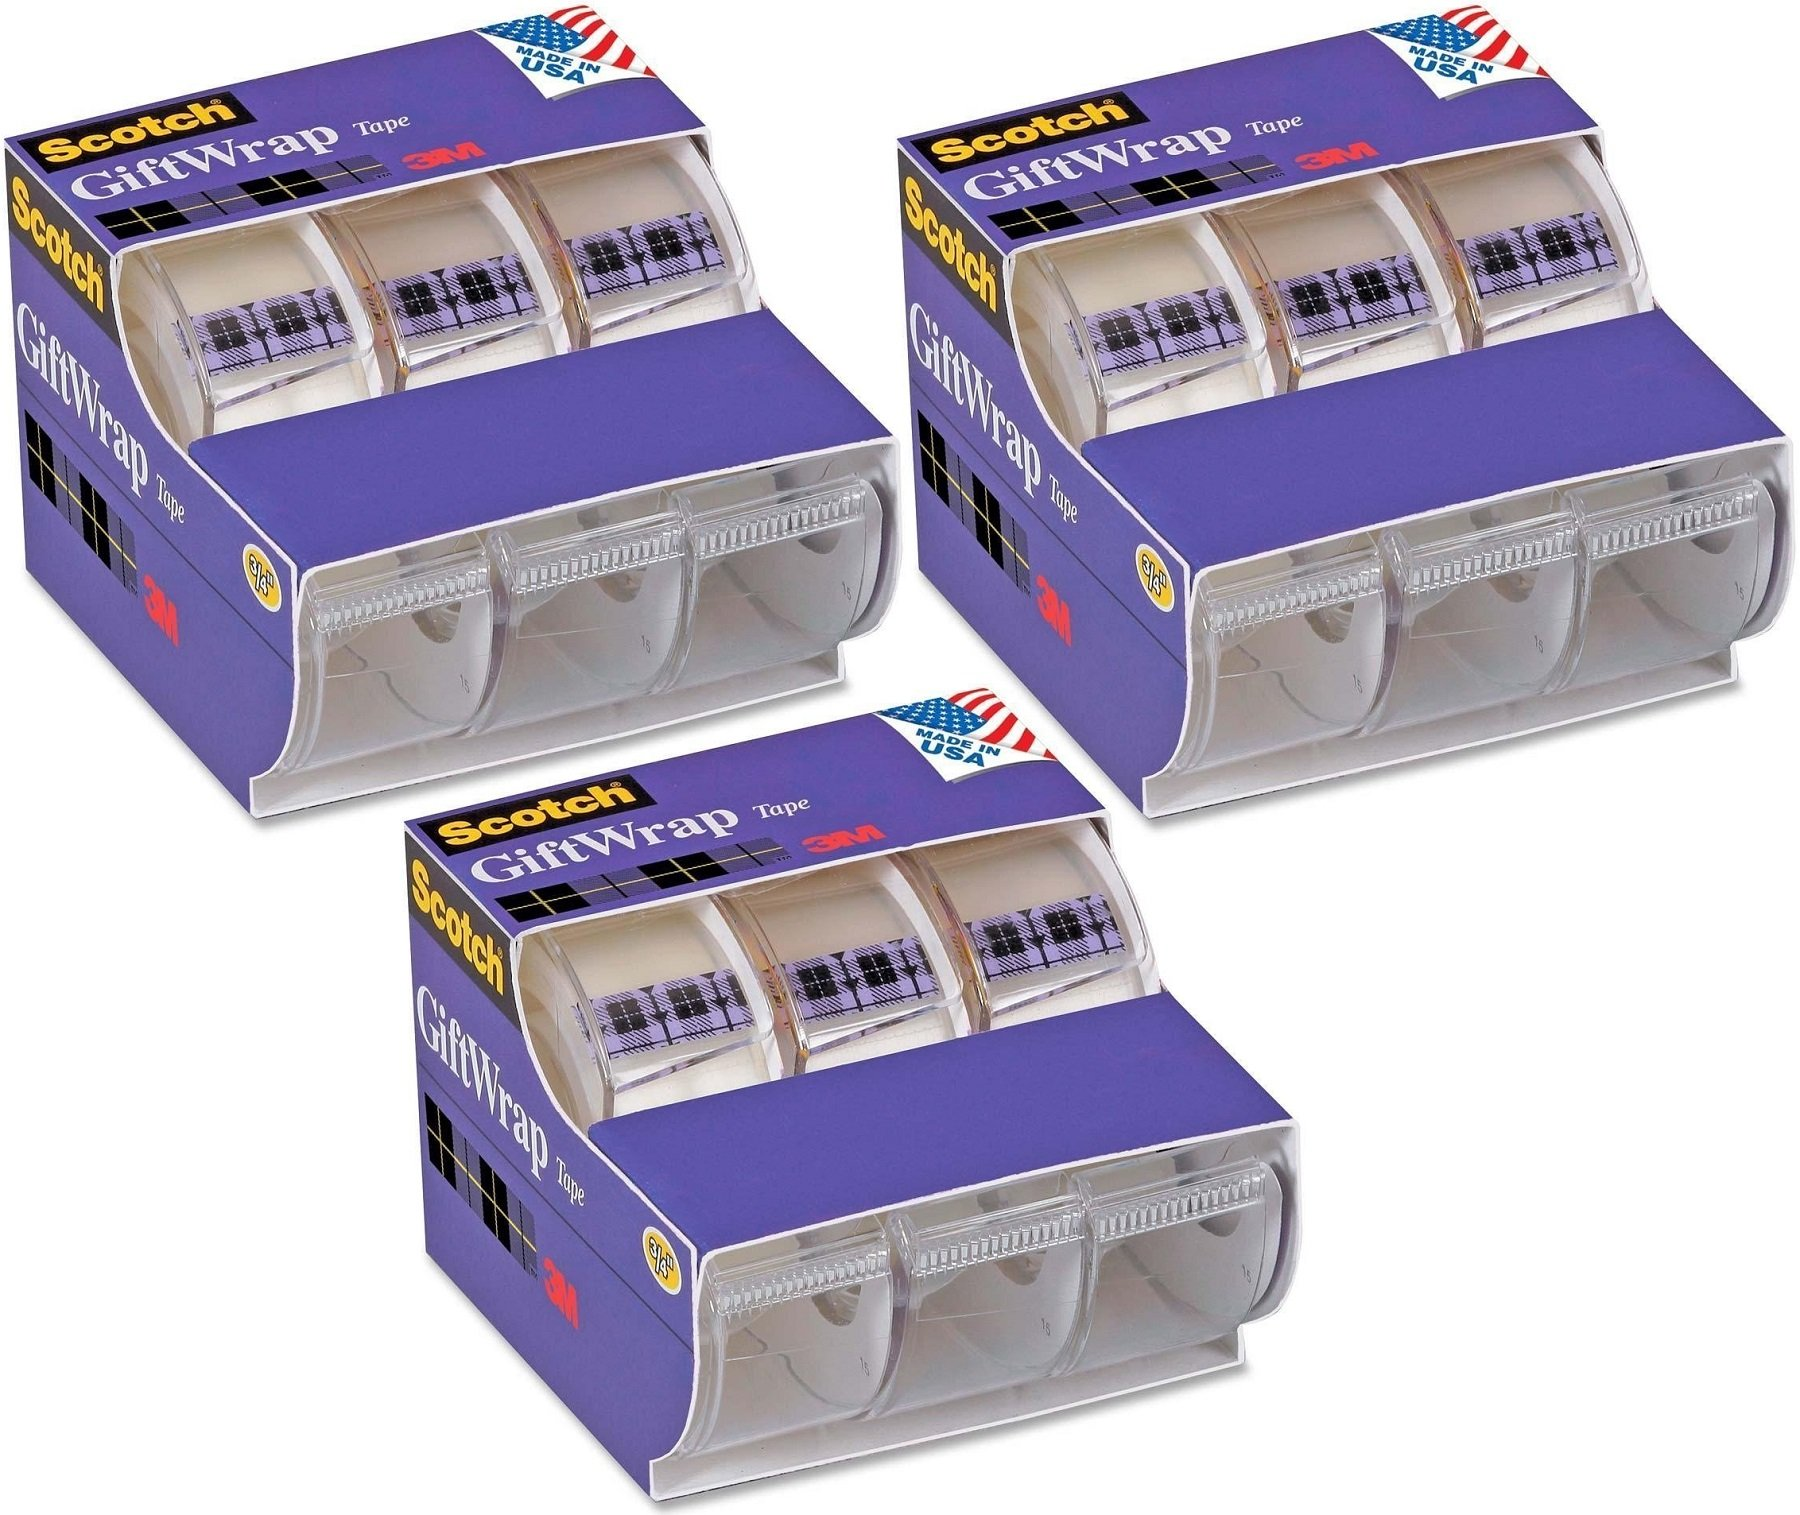 Scotch(R) Gift Wrap Tape, 0.75 x 300 Inches, 9 Pack (311)